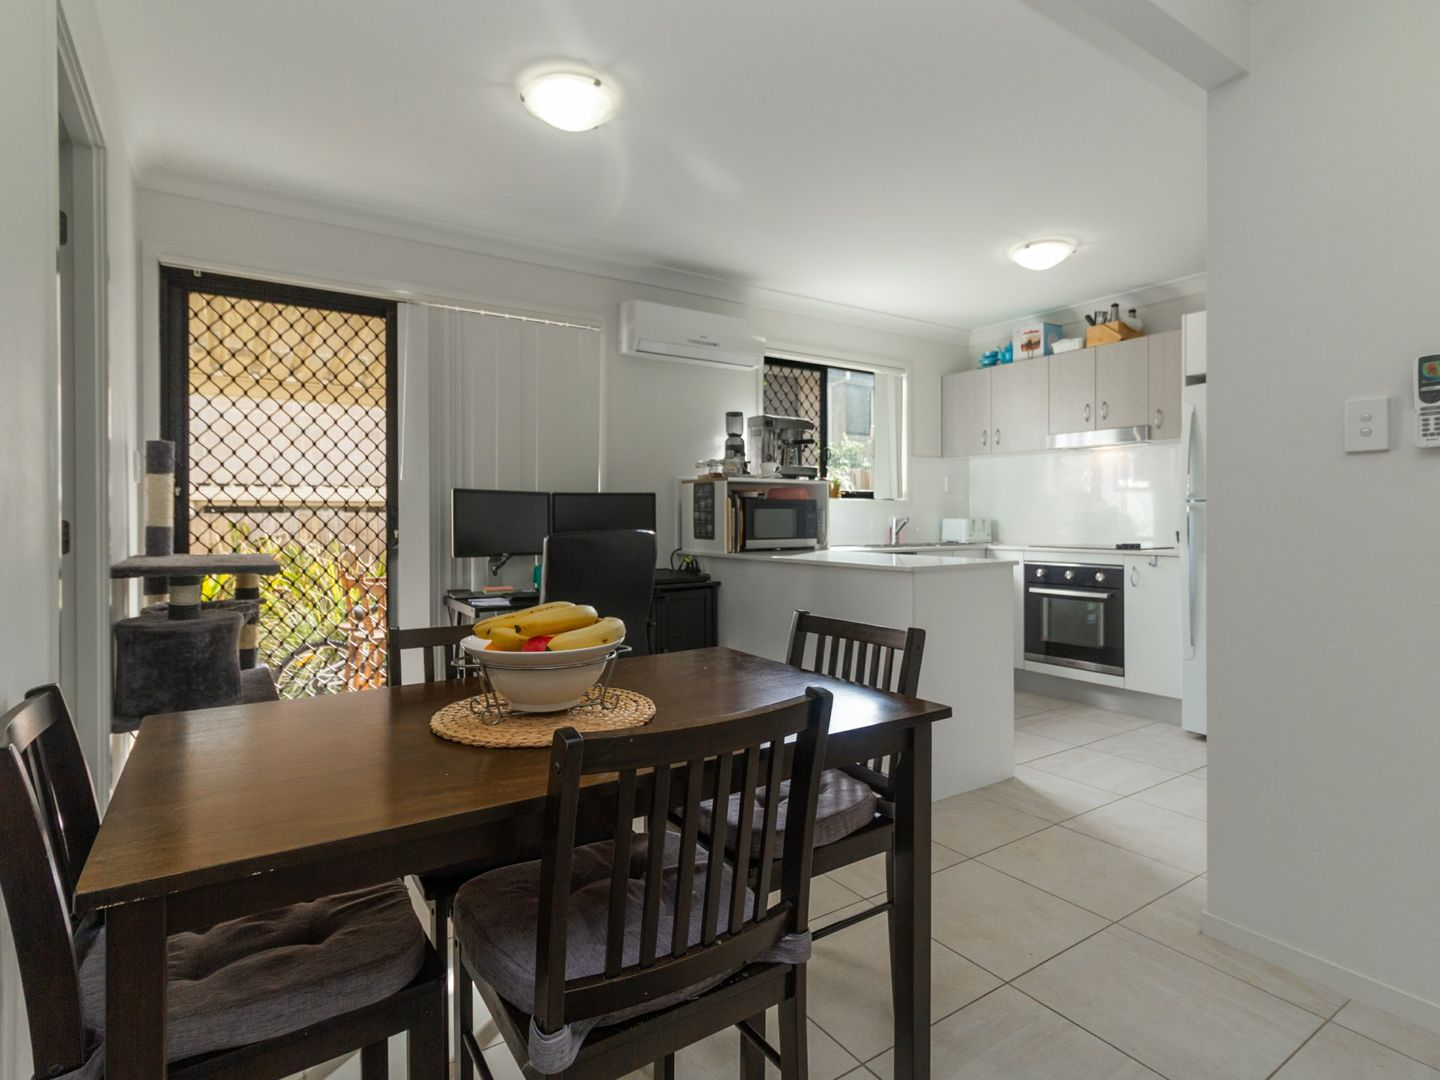 55/125 Orchard Road, Richlands QLD 4077, Image 2